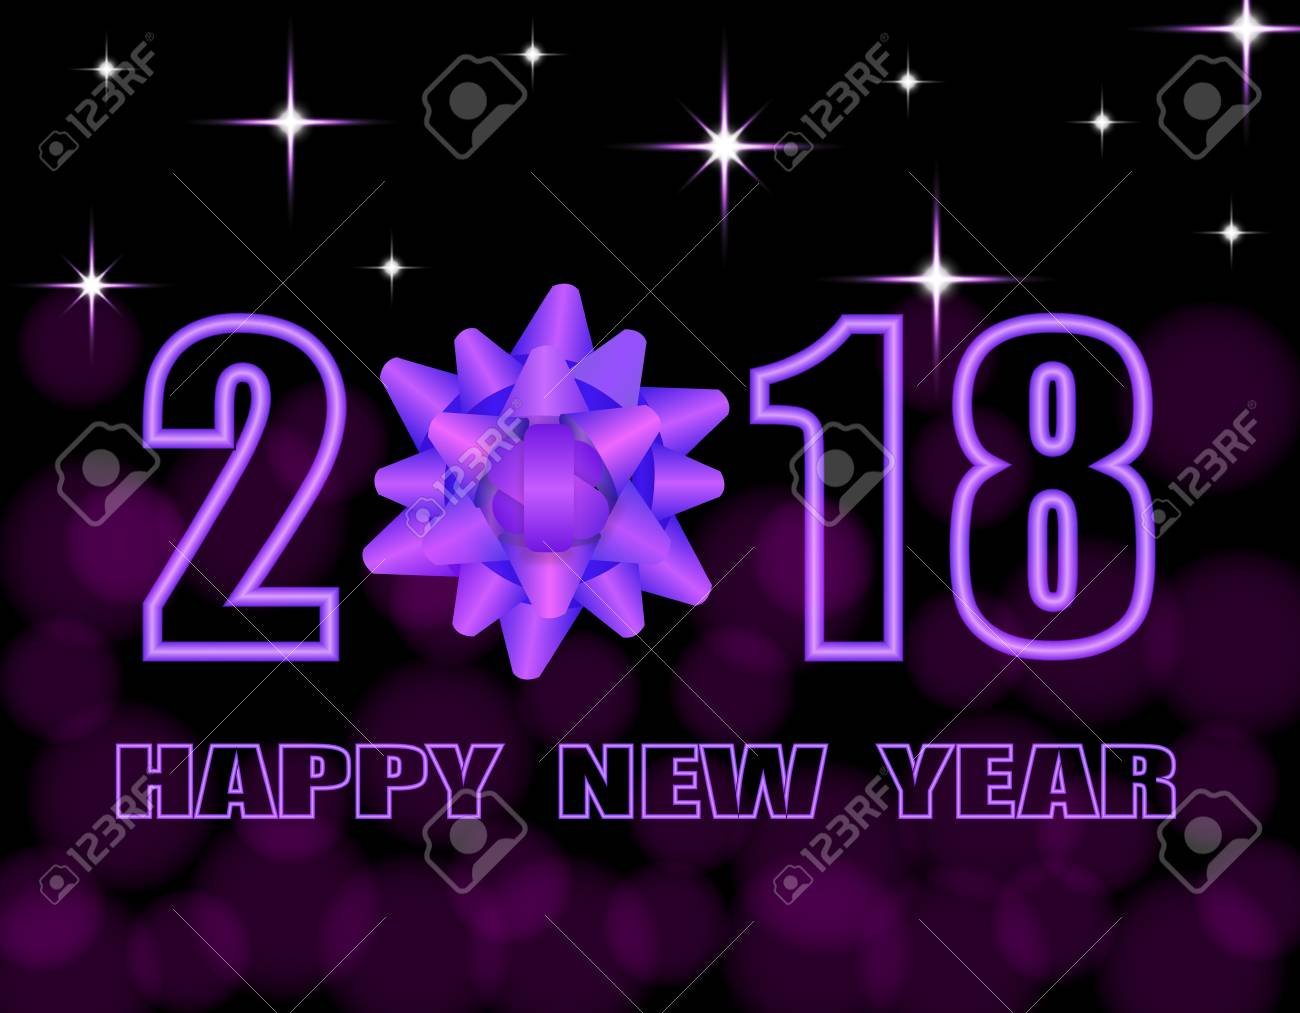 happy new year 2018 text stylized purple bow greeting card illustration stock illustration